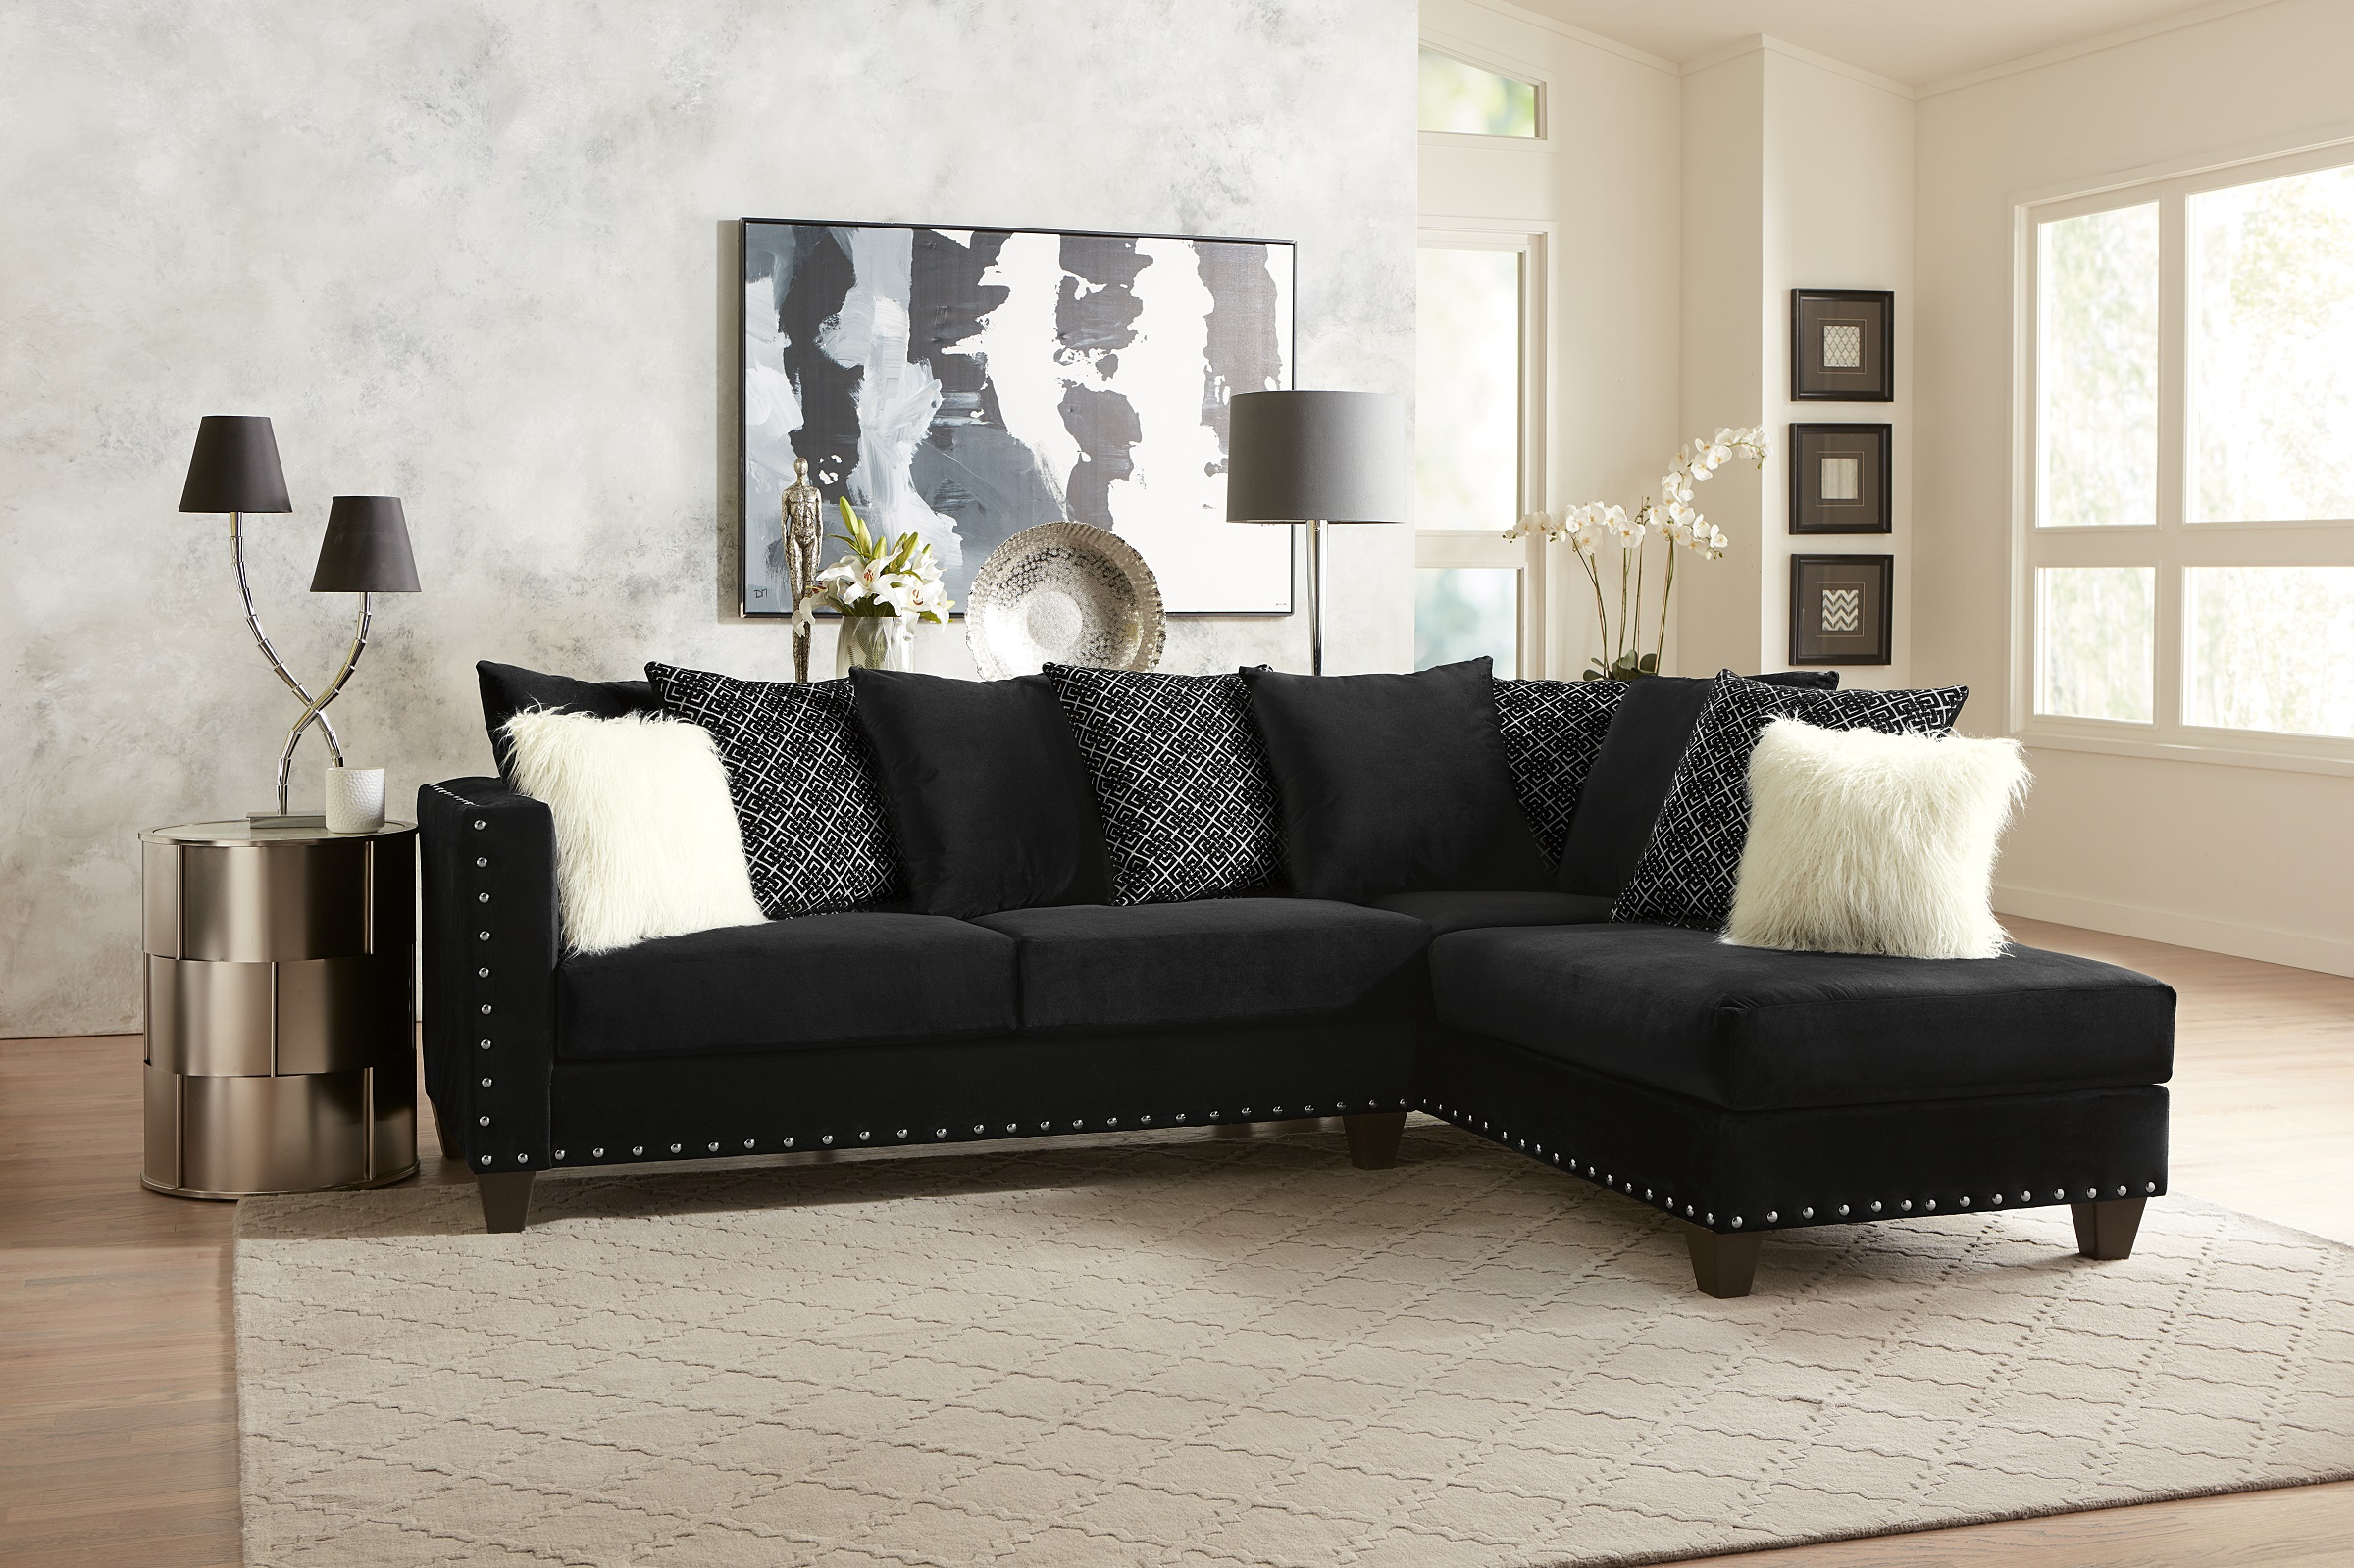 Living Room Modern Classic Black Fabric Sectional Sofa 2Pc With Regard To Sofa Chairs For Living Room (View 2 of 15)